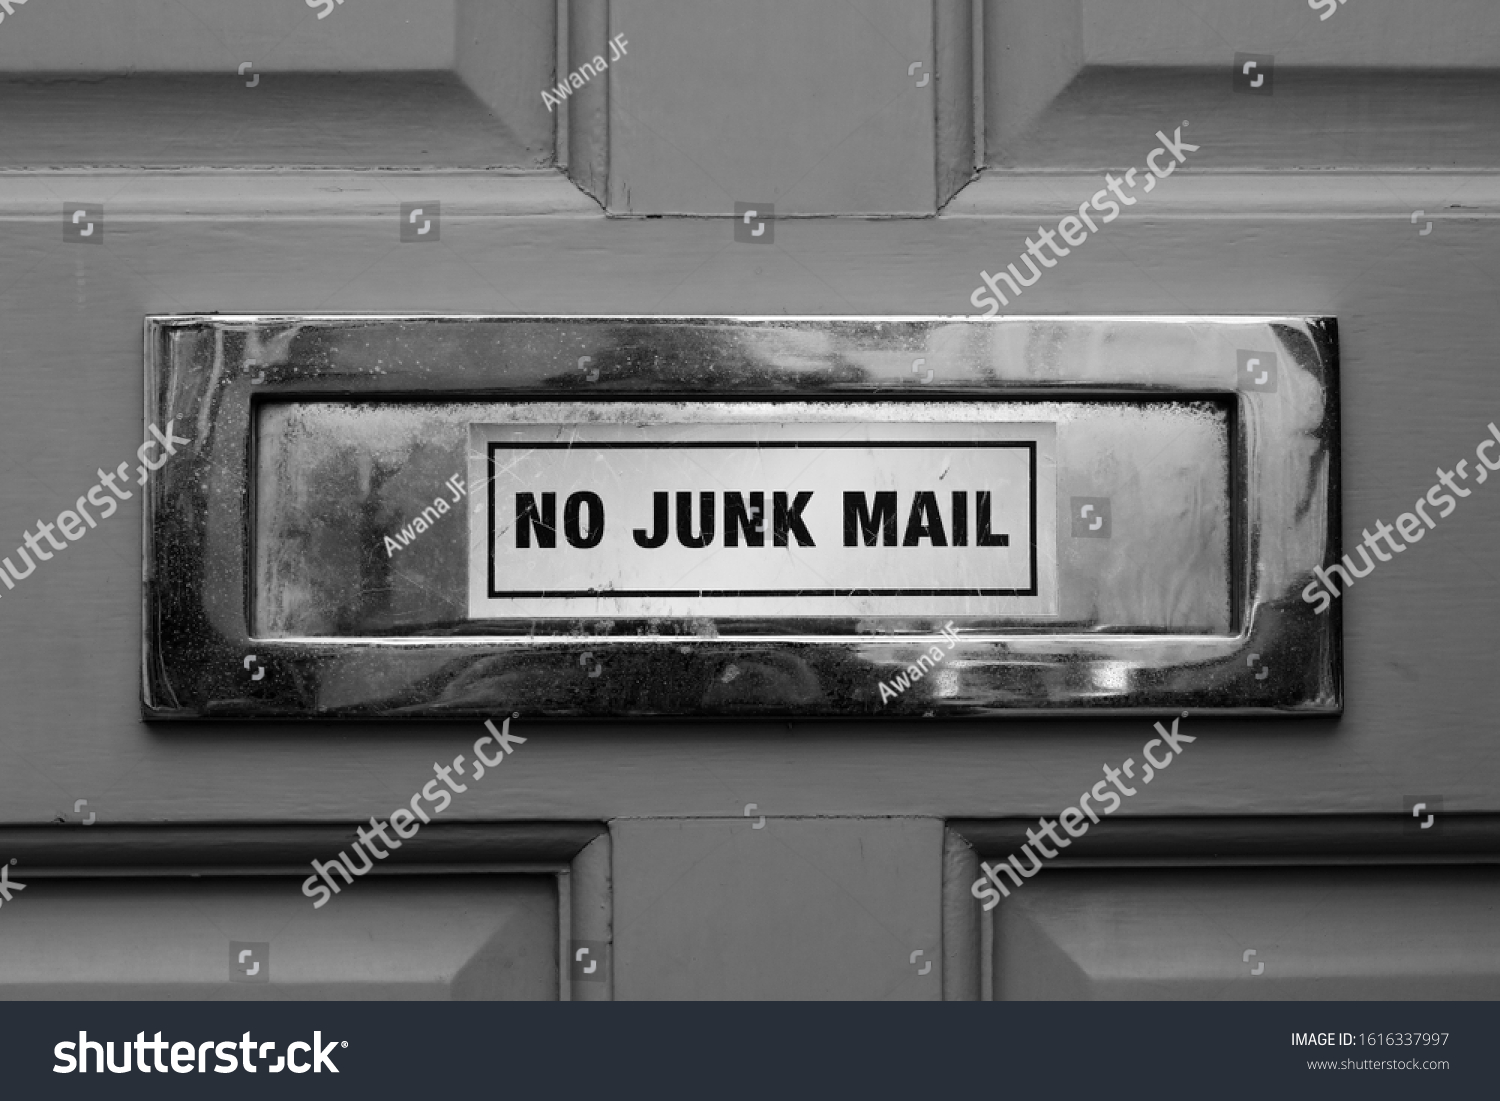 stock-photo-no-junk-mail-sign-on-a-front